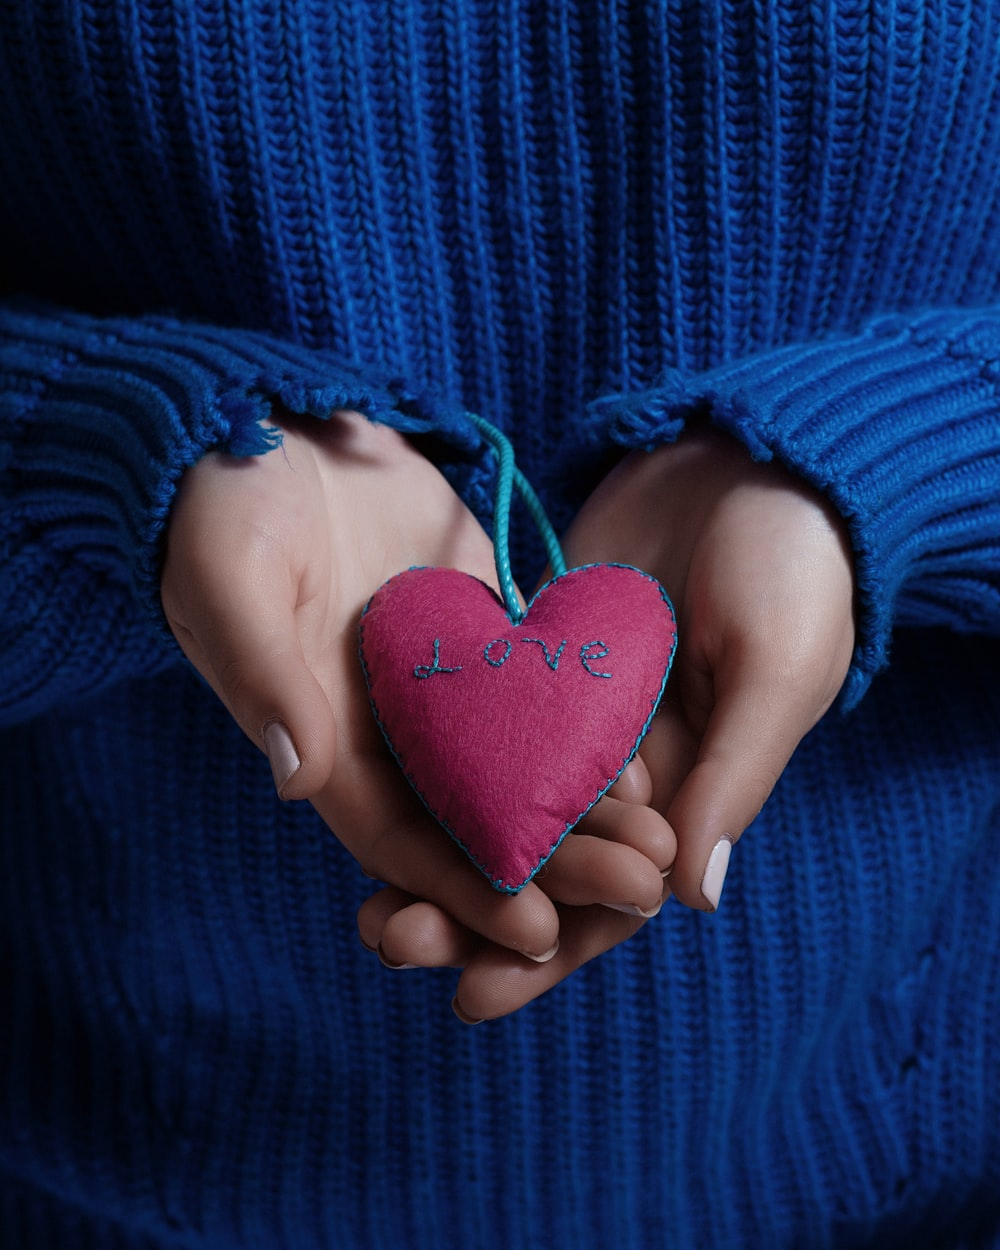 person holding heart-shaped red cushion